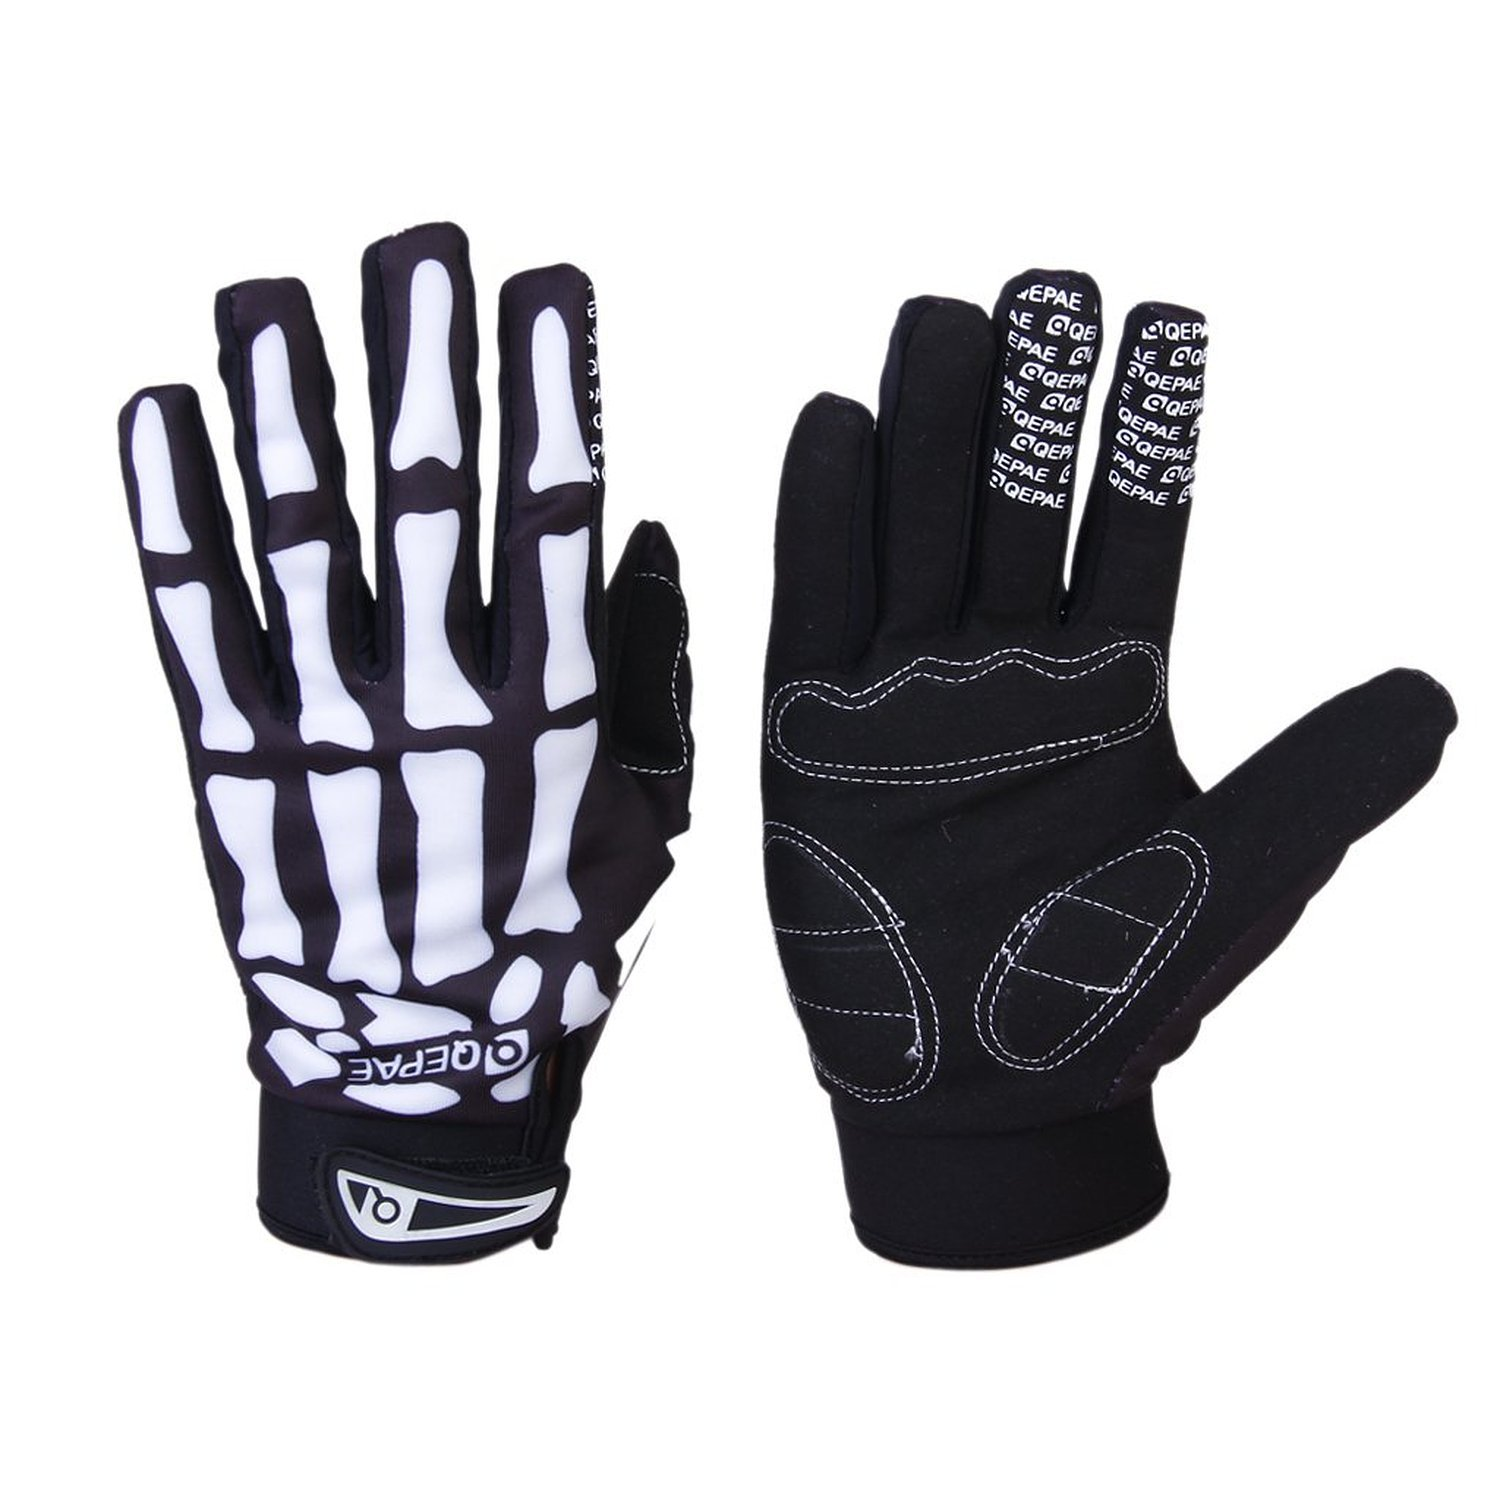 Bicycle Gloves Skeleton Pattern Full Finger Warm Bike